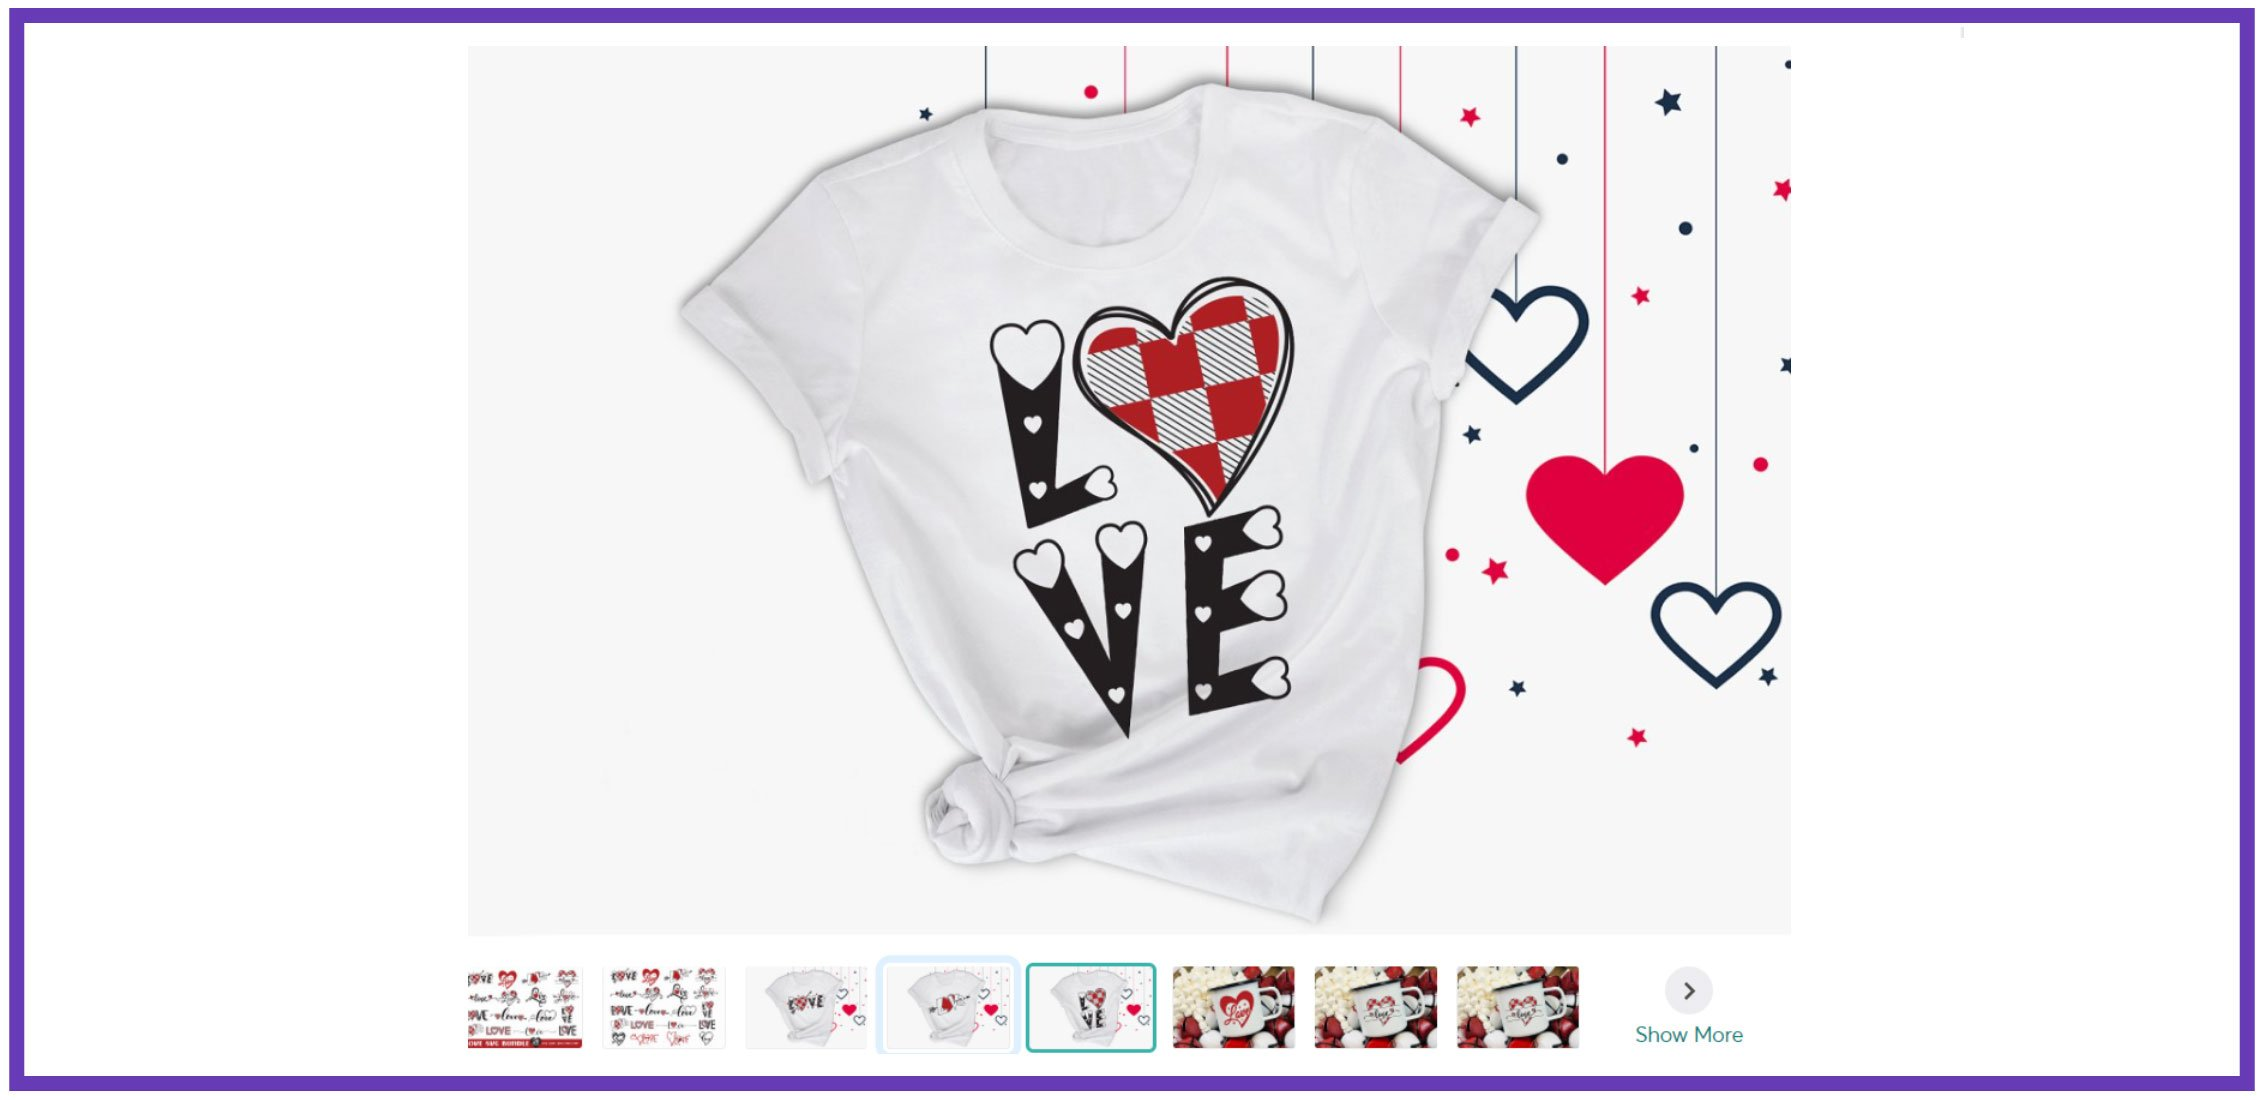 80+ Valentine's Day Shirts. Best T-shirt Designs Ideas For St. Valentine's Day - valentines day shirt design 8